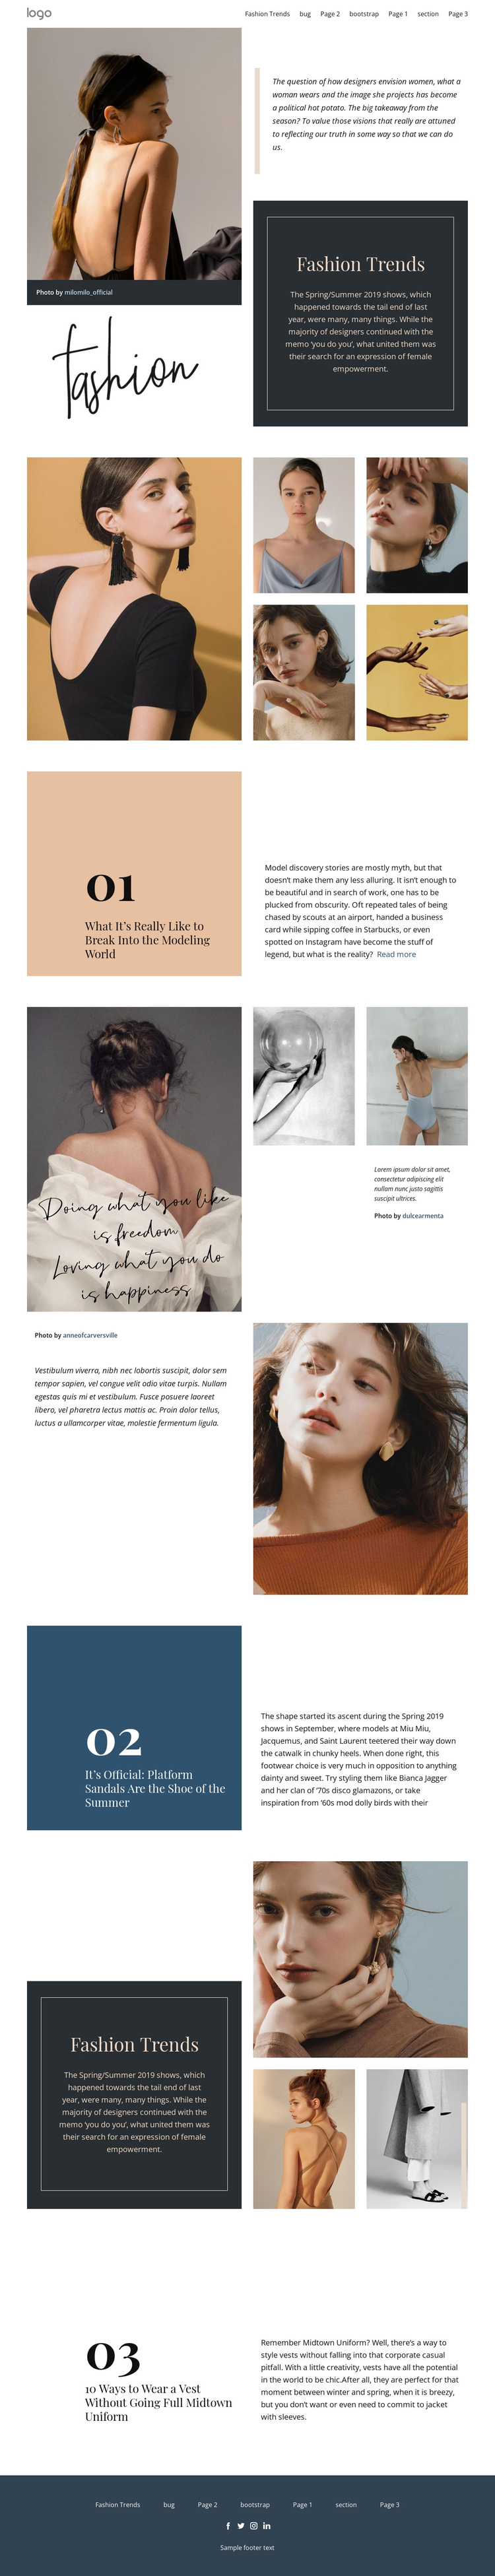 Designer vision of fashion One Page Template